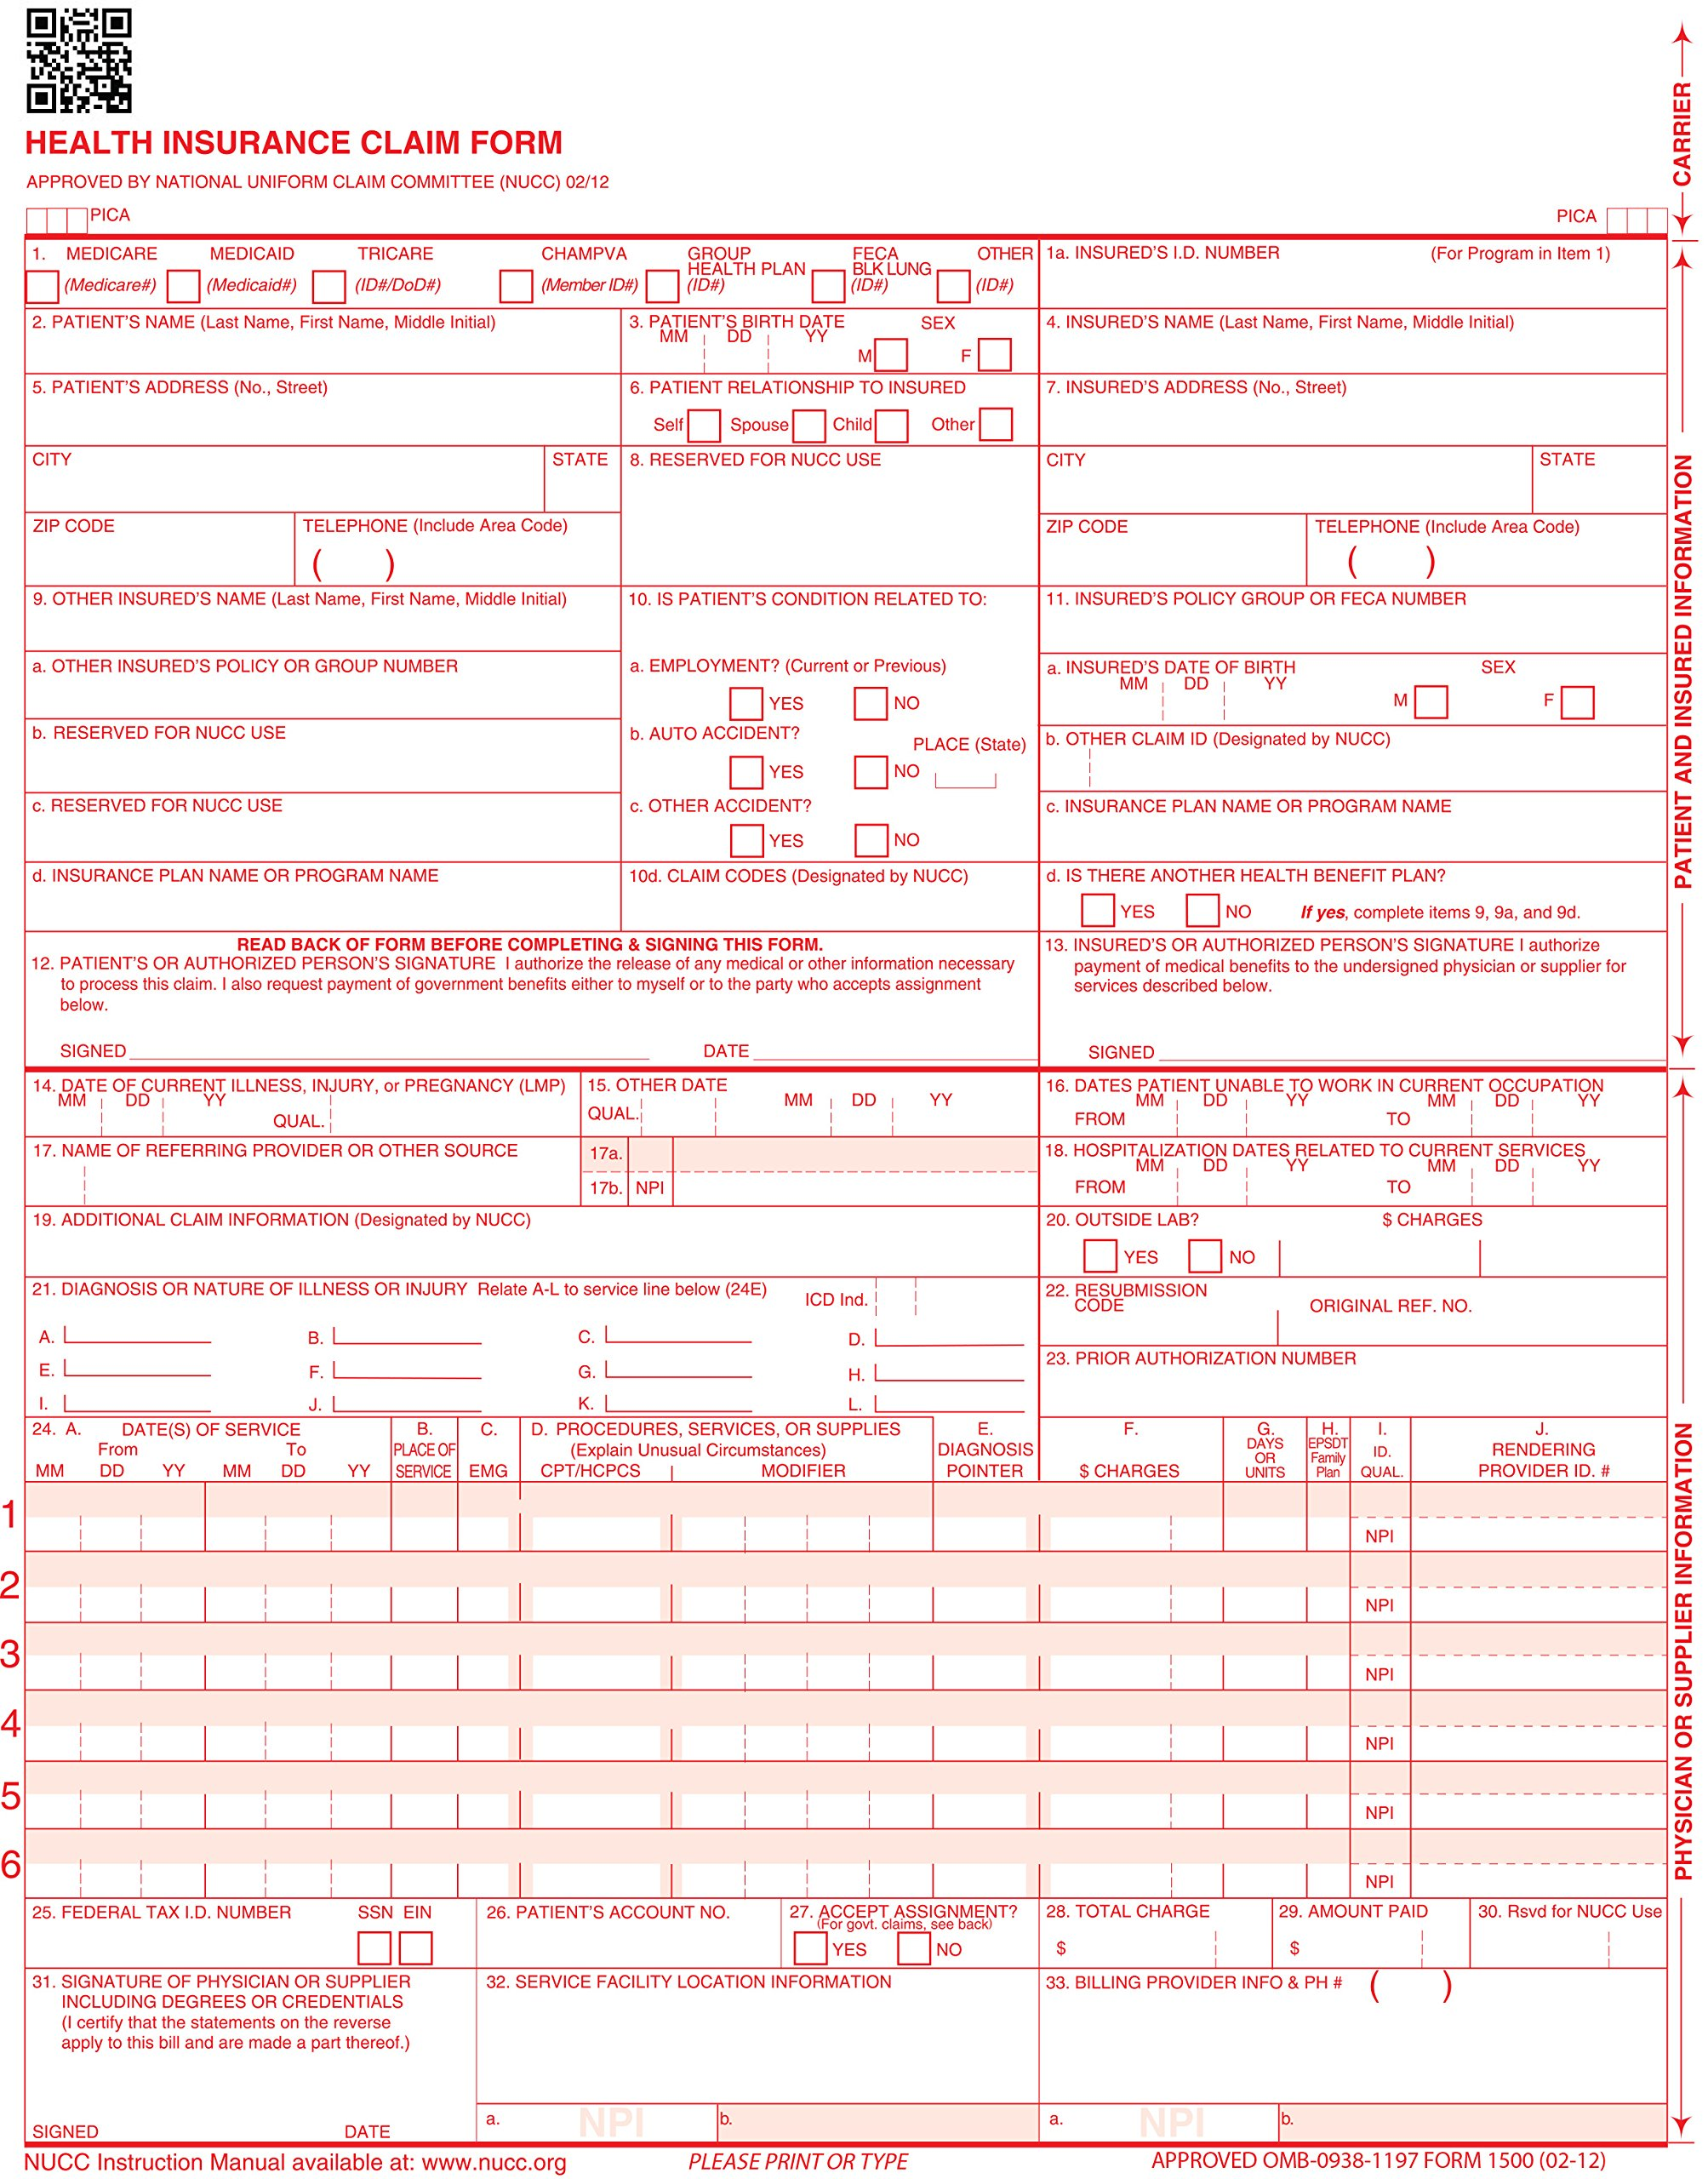 CMS 1500 Claim Forms ''ICD-10'' HCFA (Version 02/12) - Health Insurance, Laser Cut Sheet - 2500 Sheets